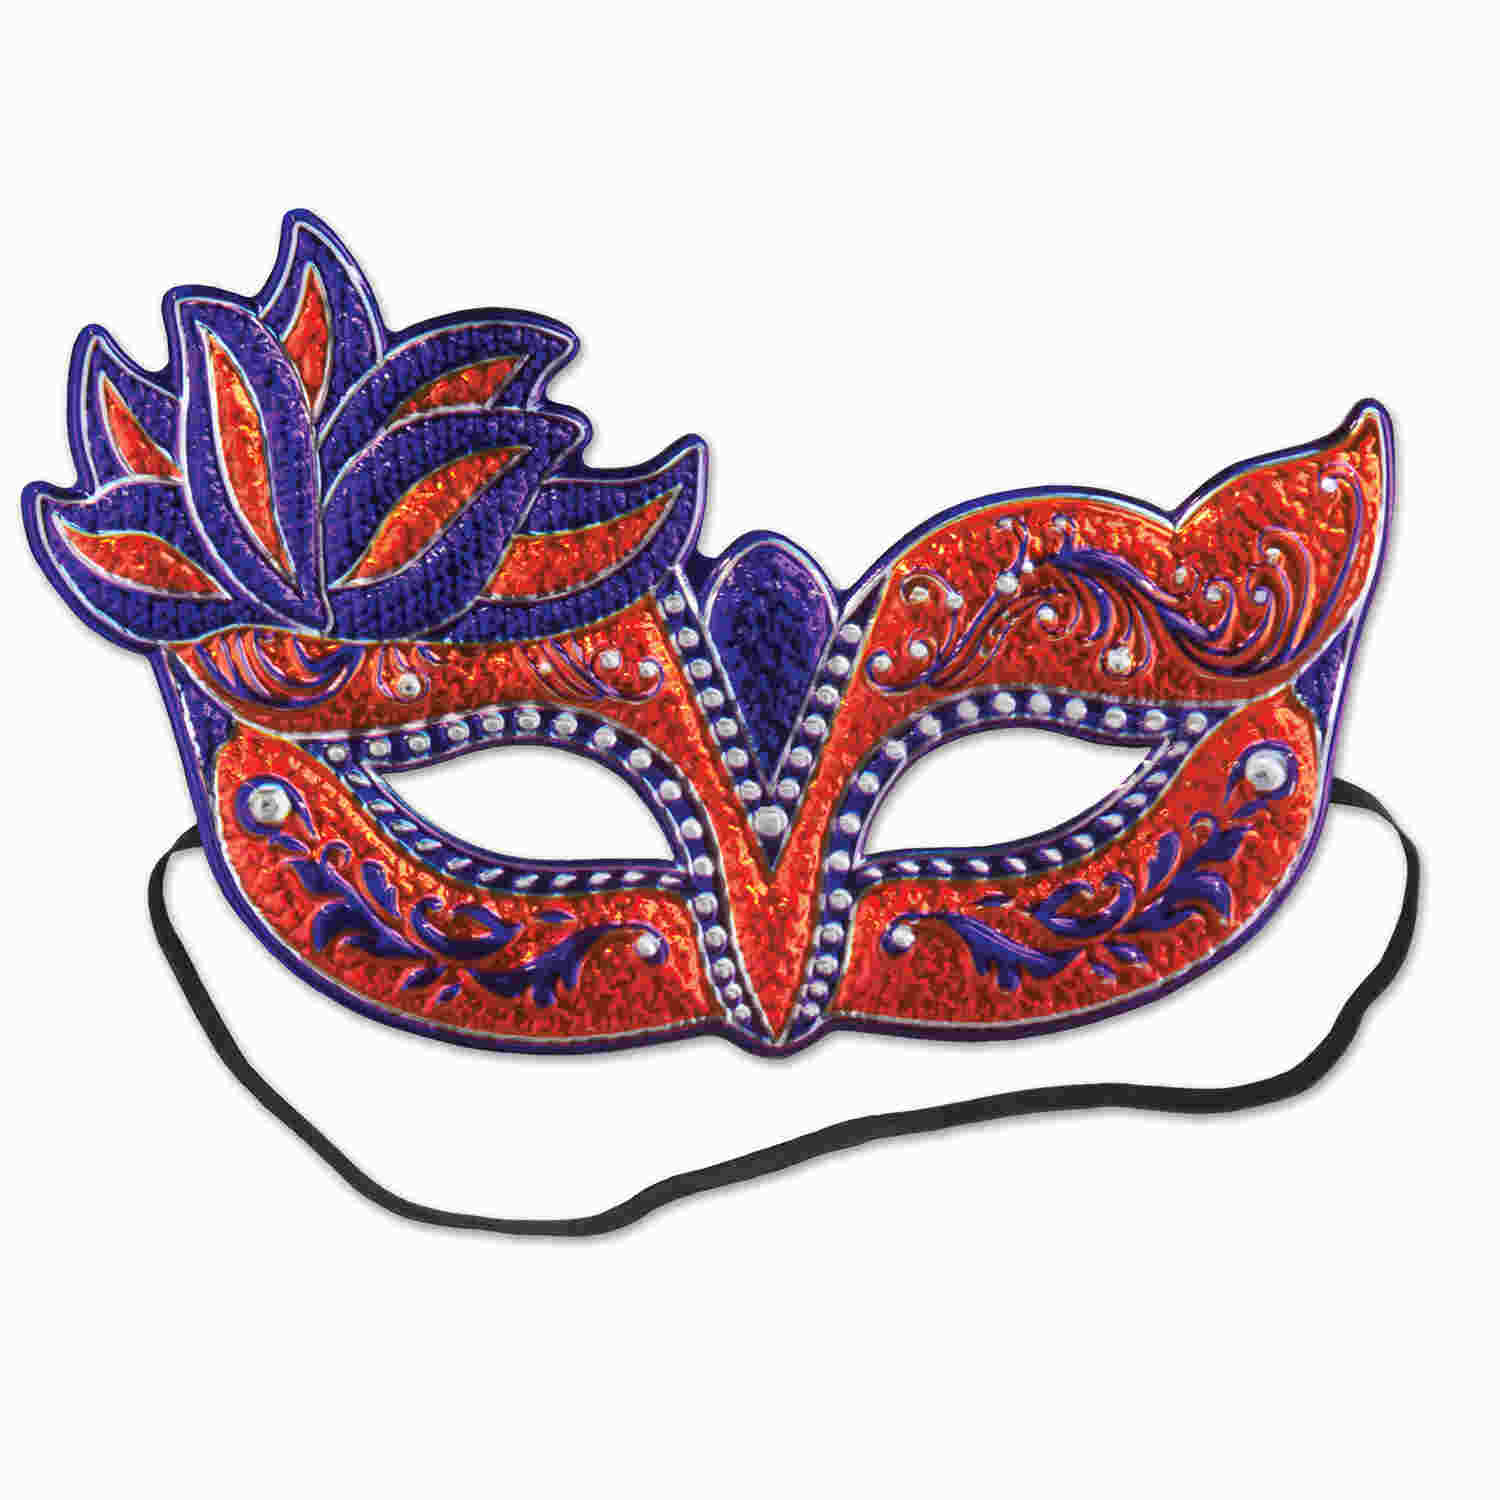 Red and purple intricate styled Mardi Gras mask.